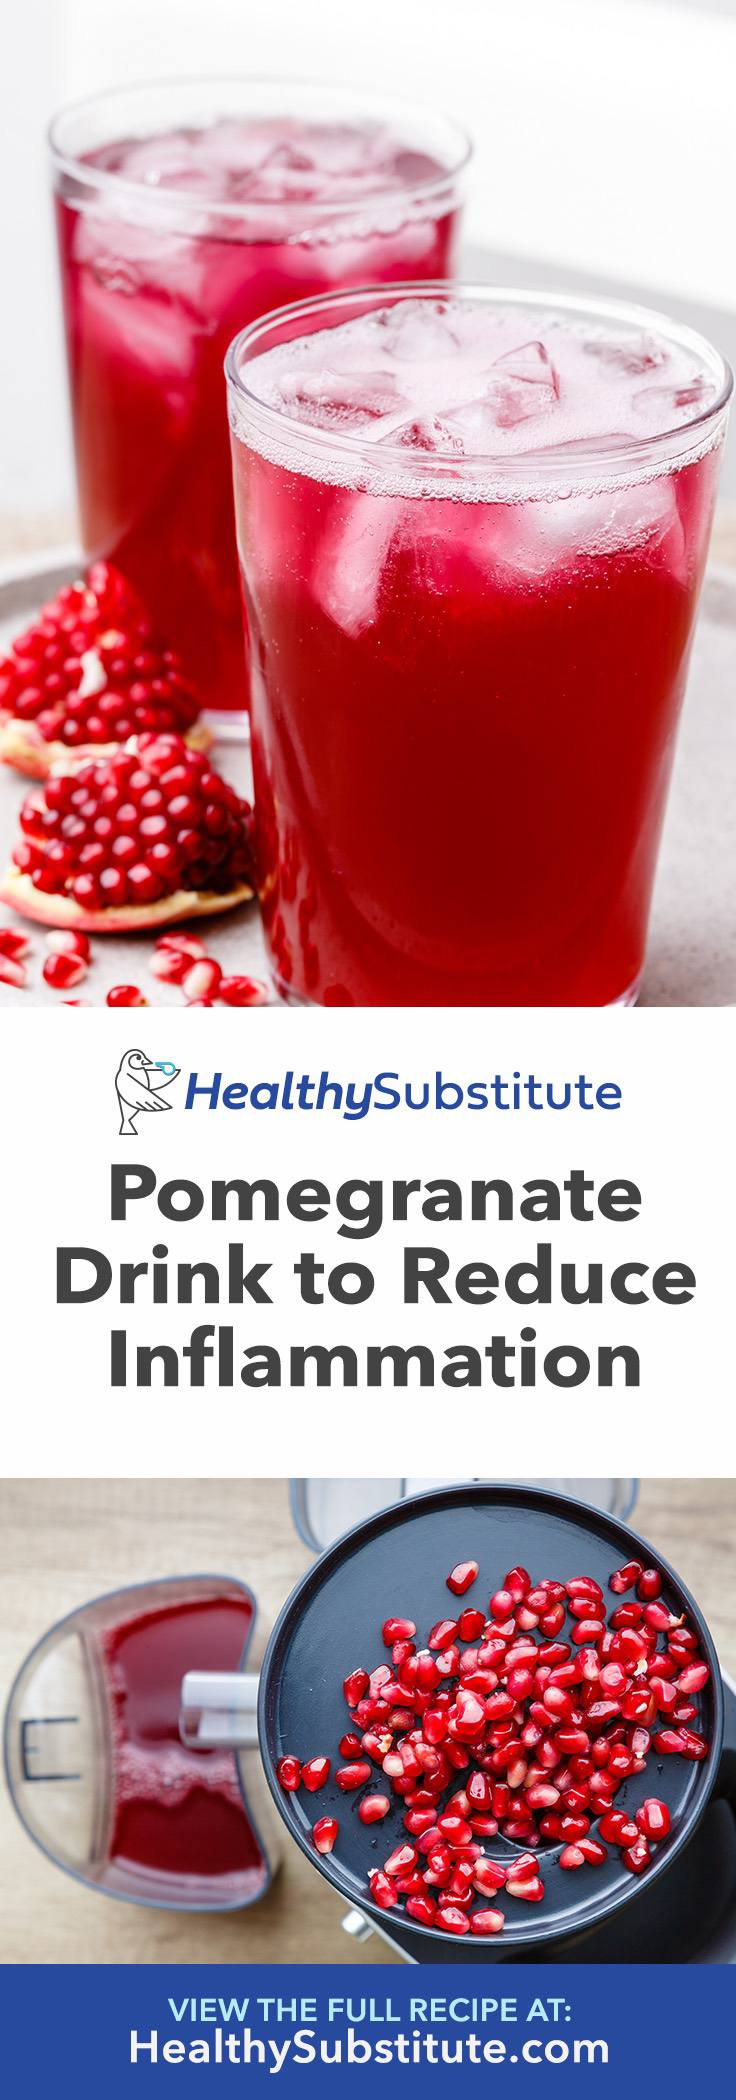 Sparkling Pomegranate Juice Drink to Reduce Inflammation